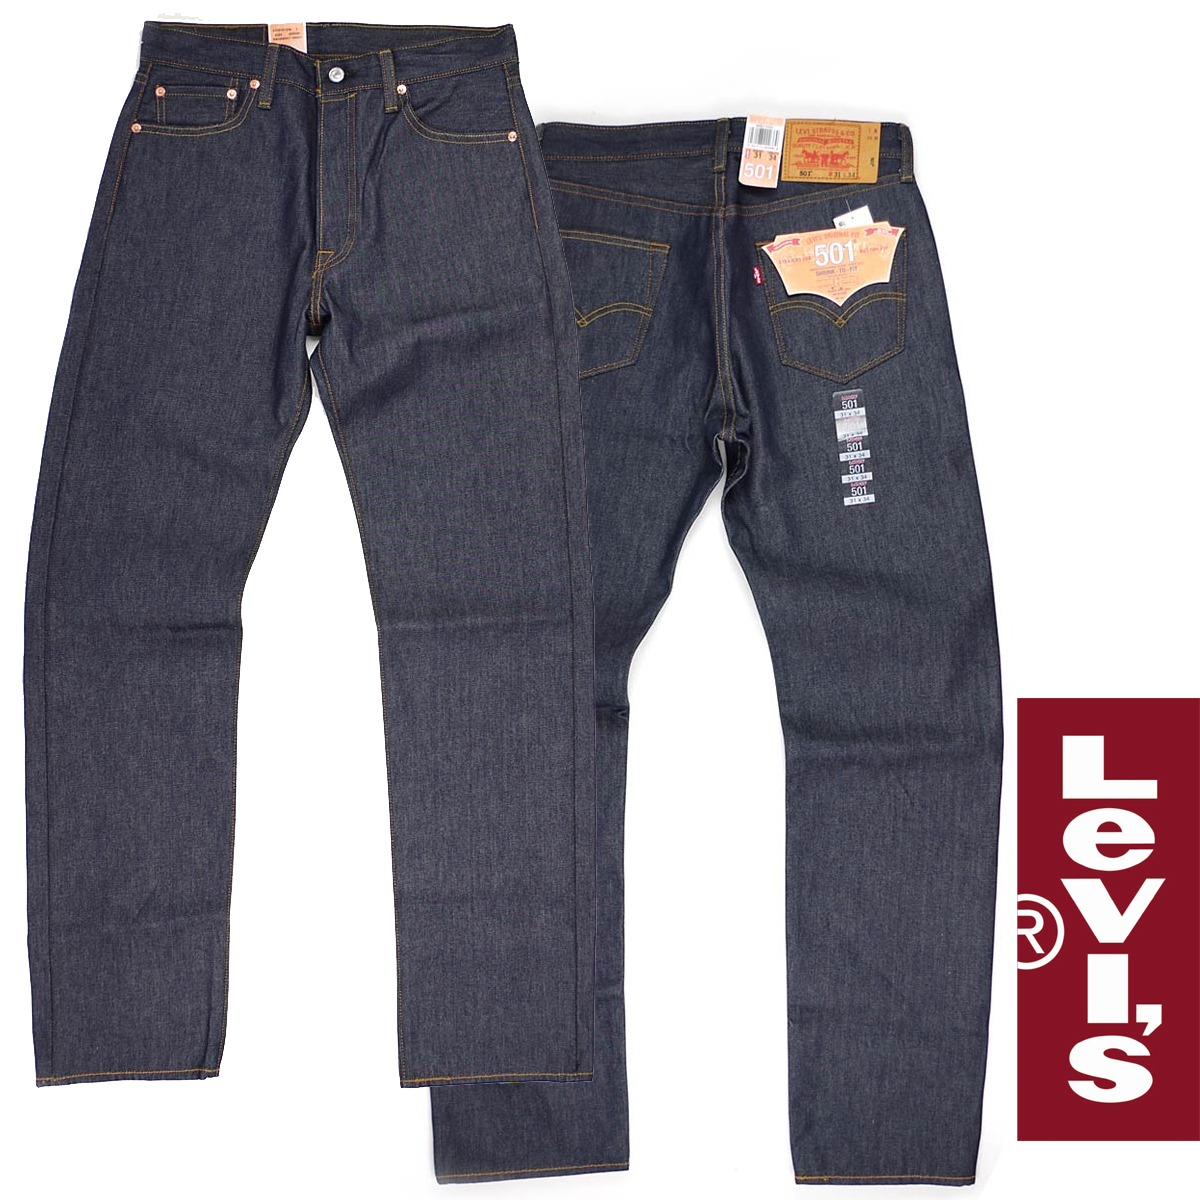 ce3b56a1fd3 Levis LEVI'S 501-0000 original button fried food straight jeans rigid STF □  bandana present ...